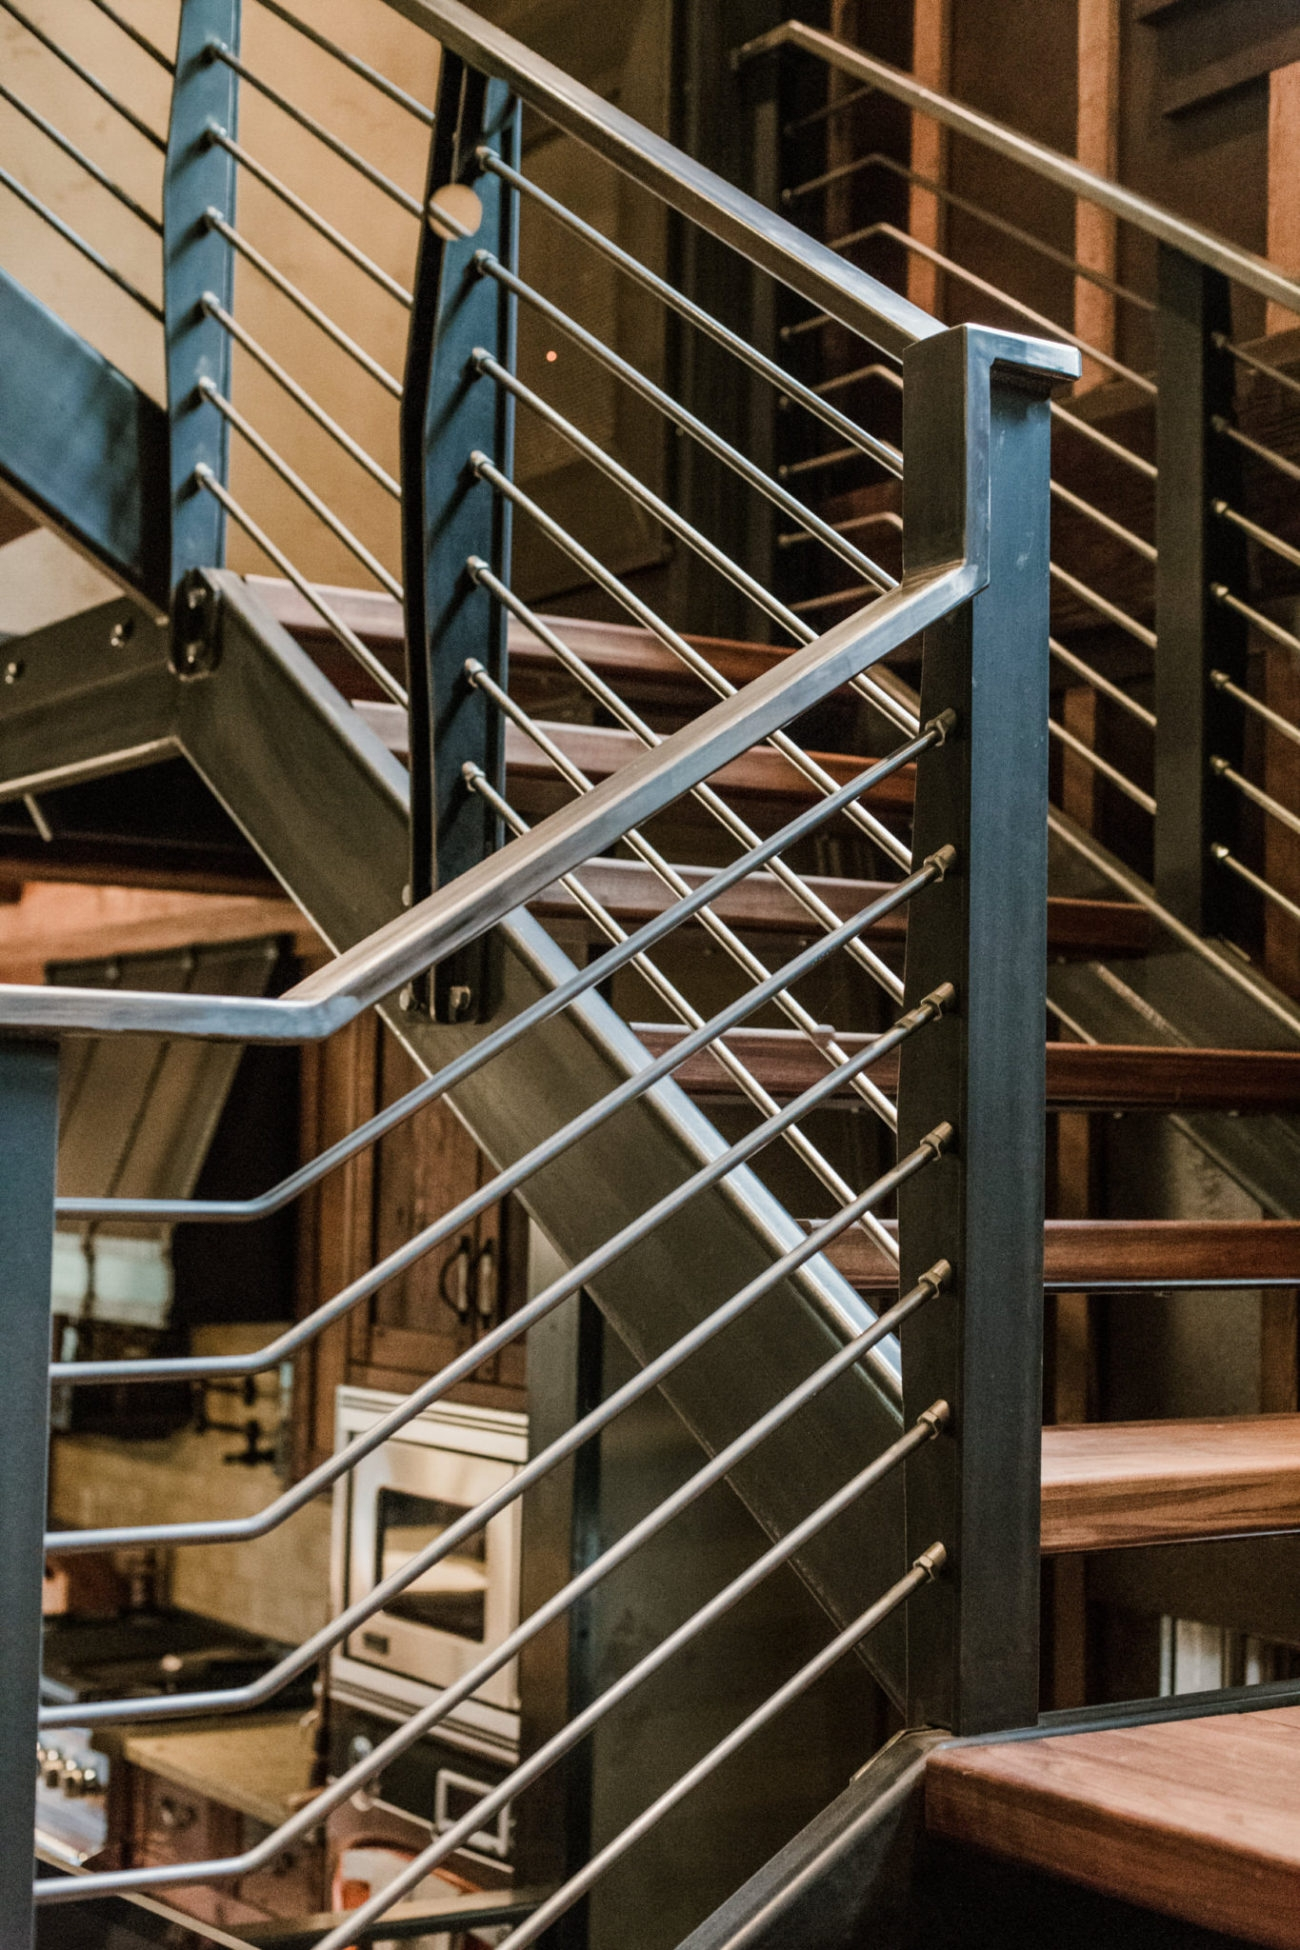 Stairs And Railing – Custom Ii Manufacturing   Stainless Steel Bannister Rails   Staircase Railing   Wood   Brushed Stainless   Railing Kits   Balcony